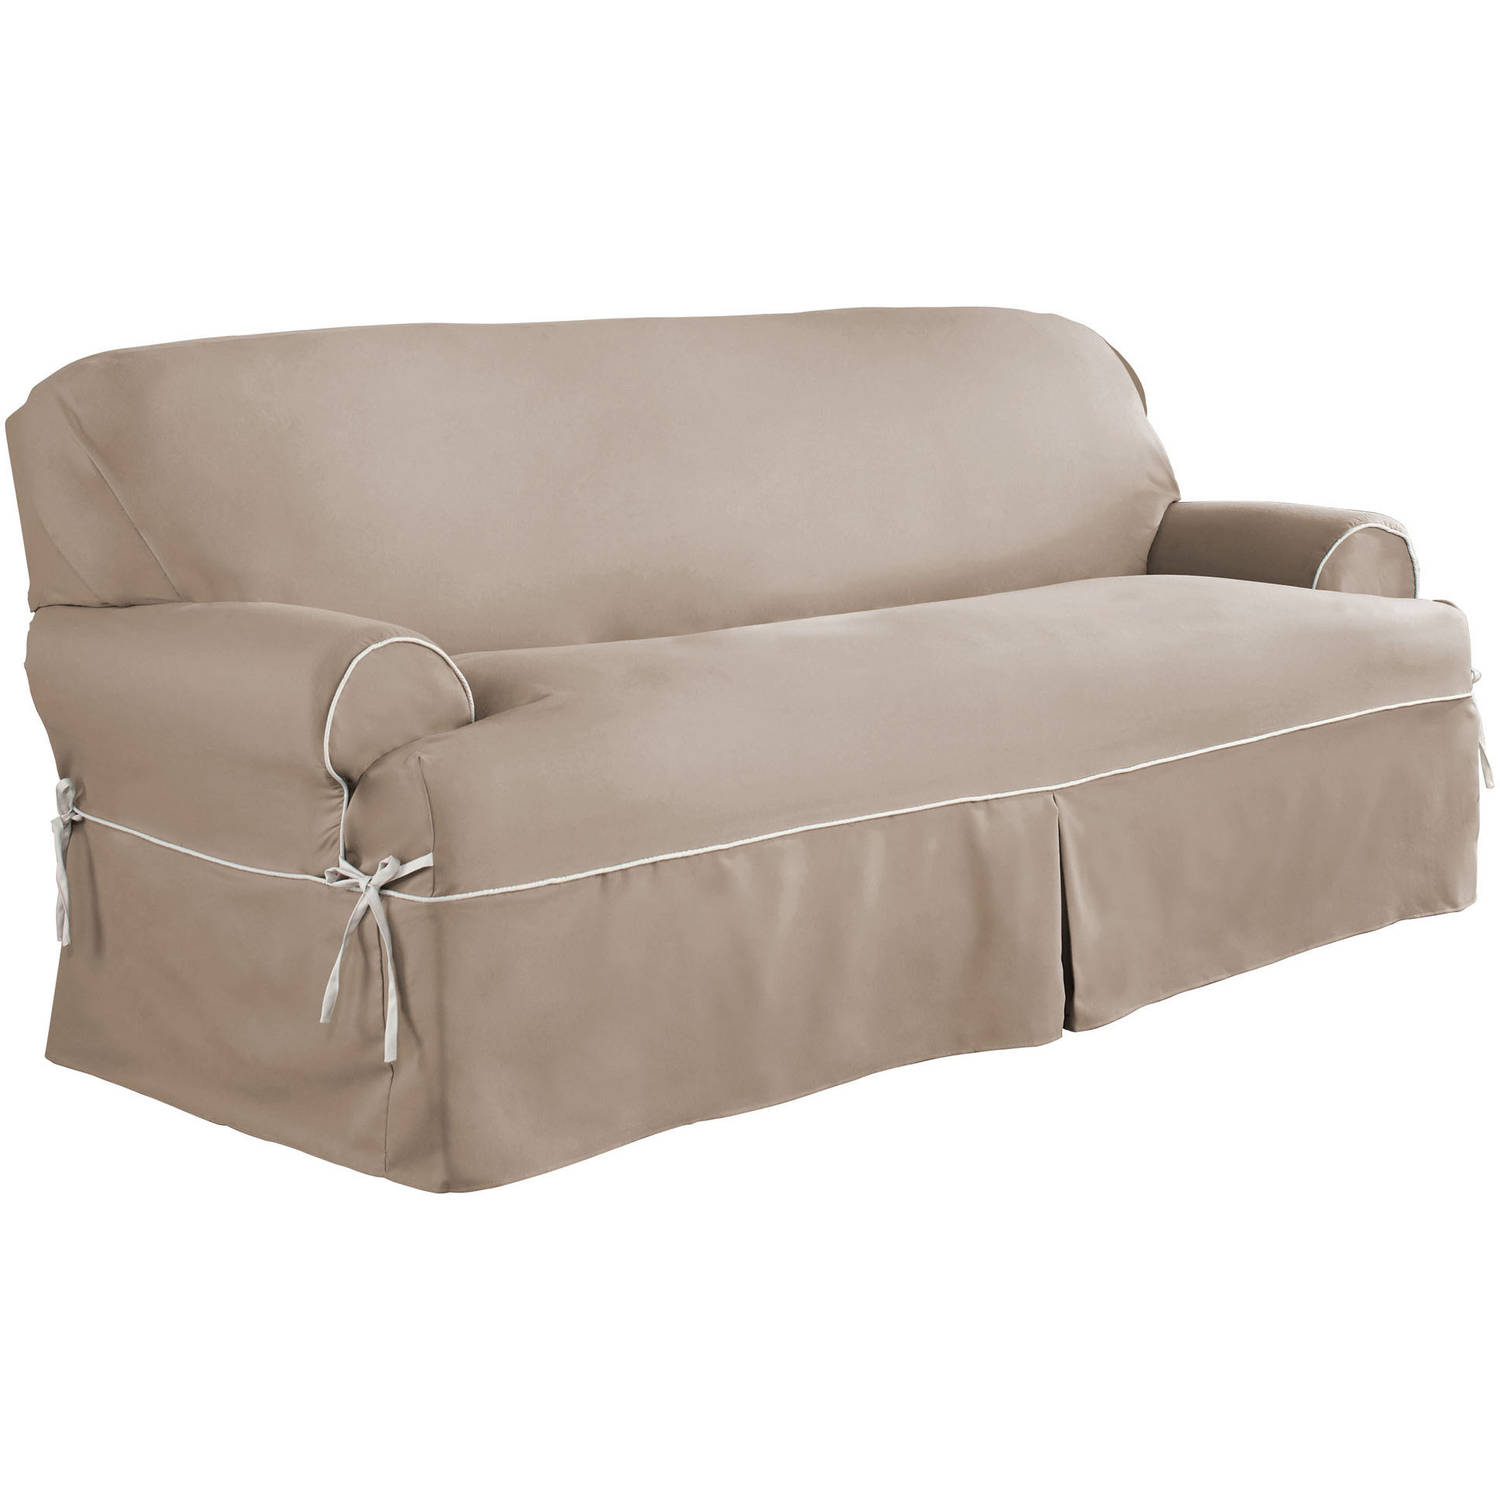 Serta relaxed fit duck furniture slipcover sofa 1 piece t cushion Loveseat cushion covers